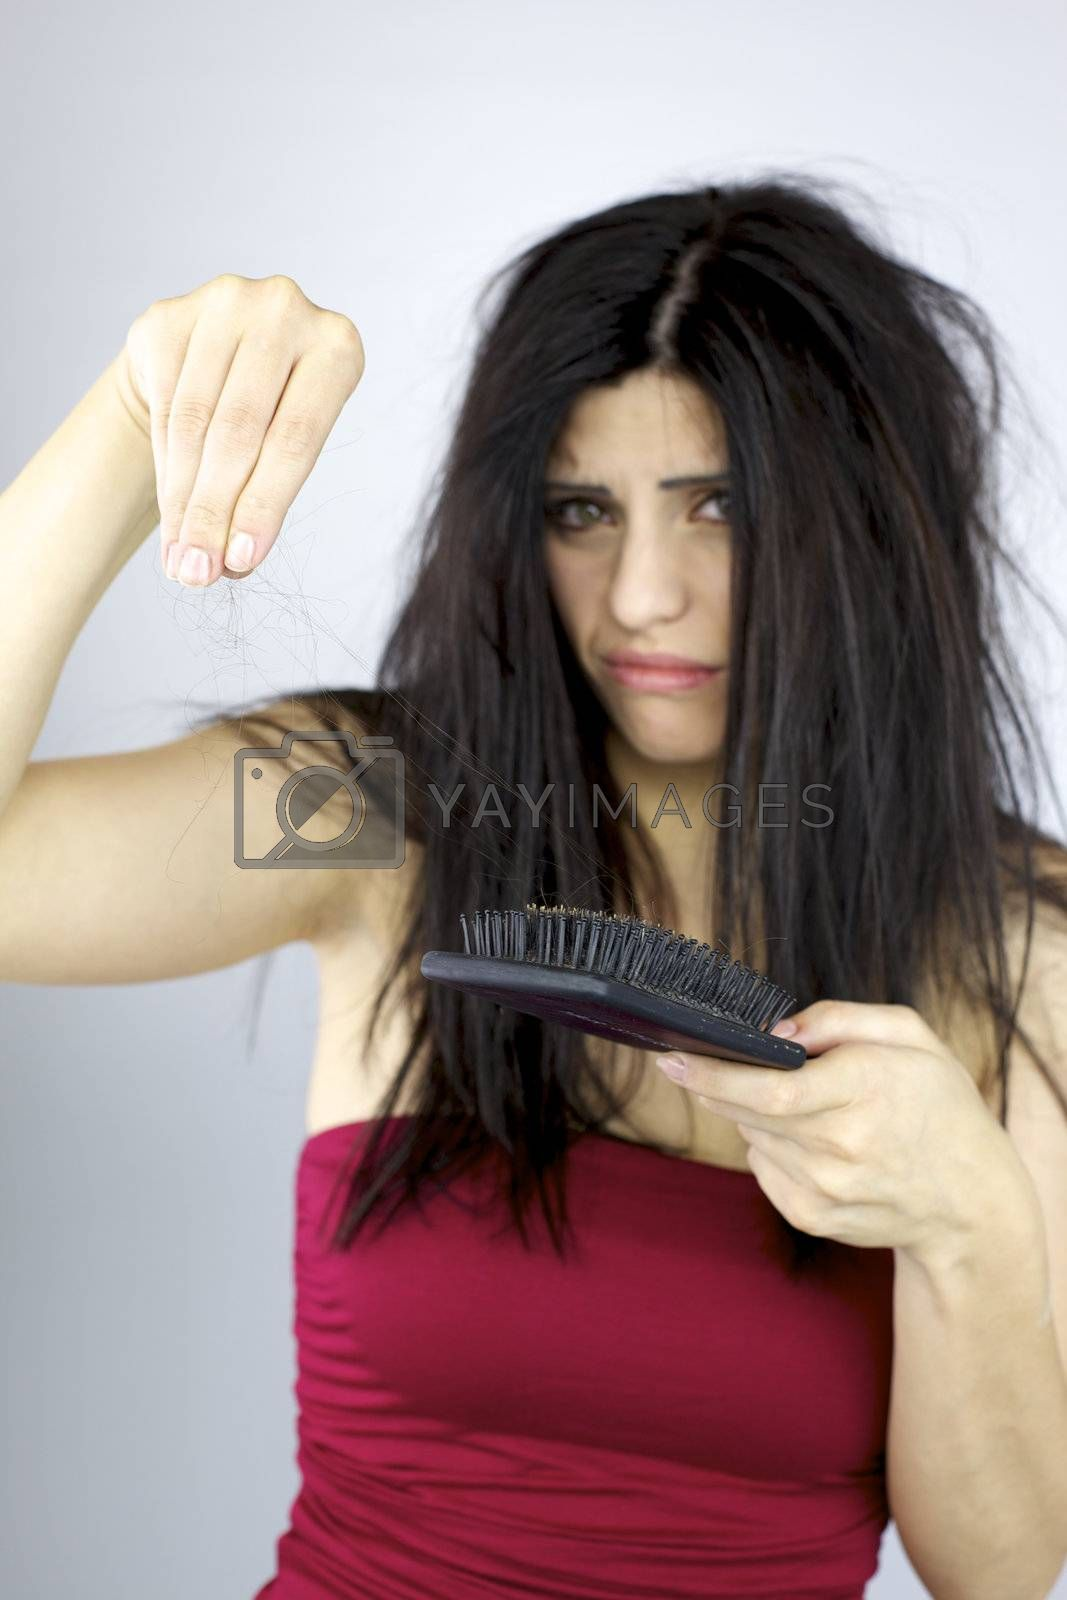 Unhappy woman holding lost hair in hand